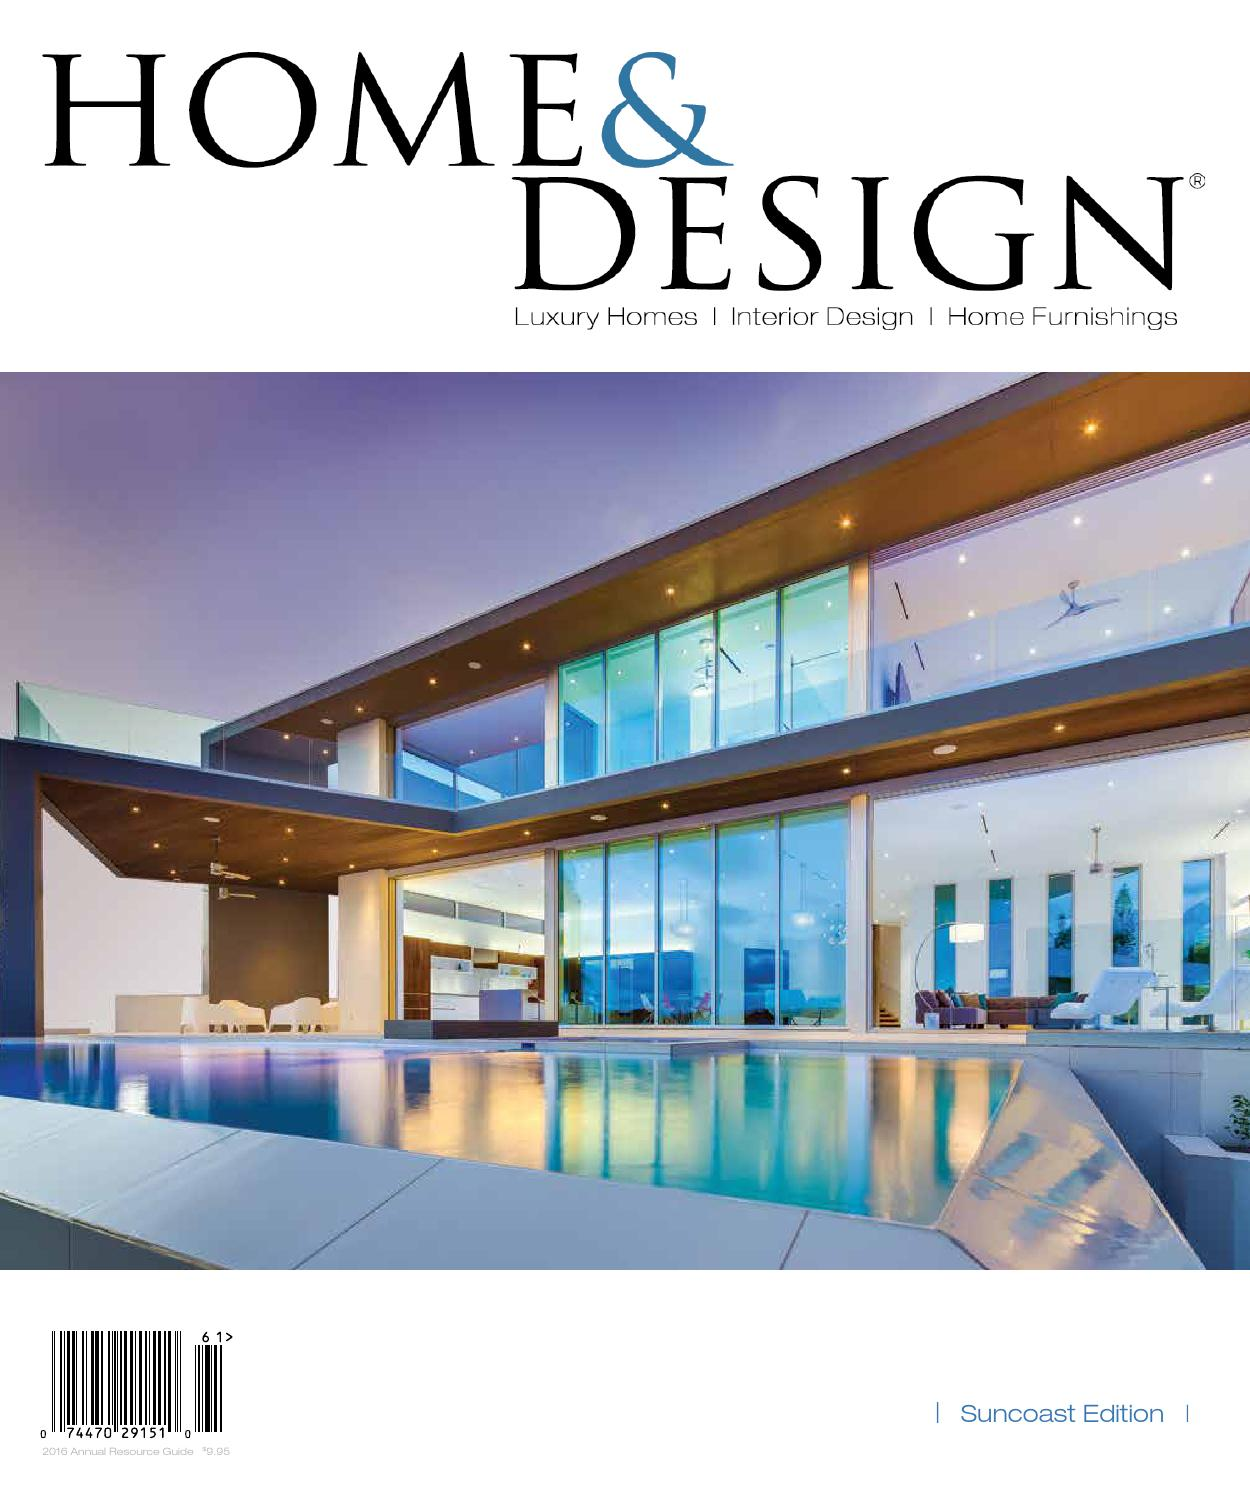 Home Design Magazine home & design magazine | annual resource guide 2016 | suncoast